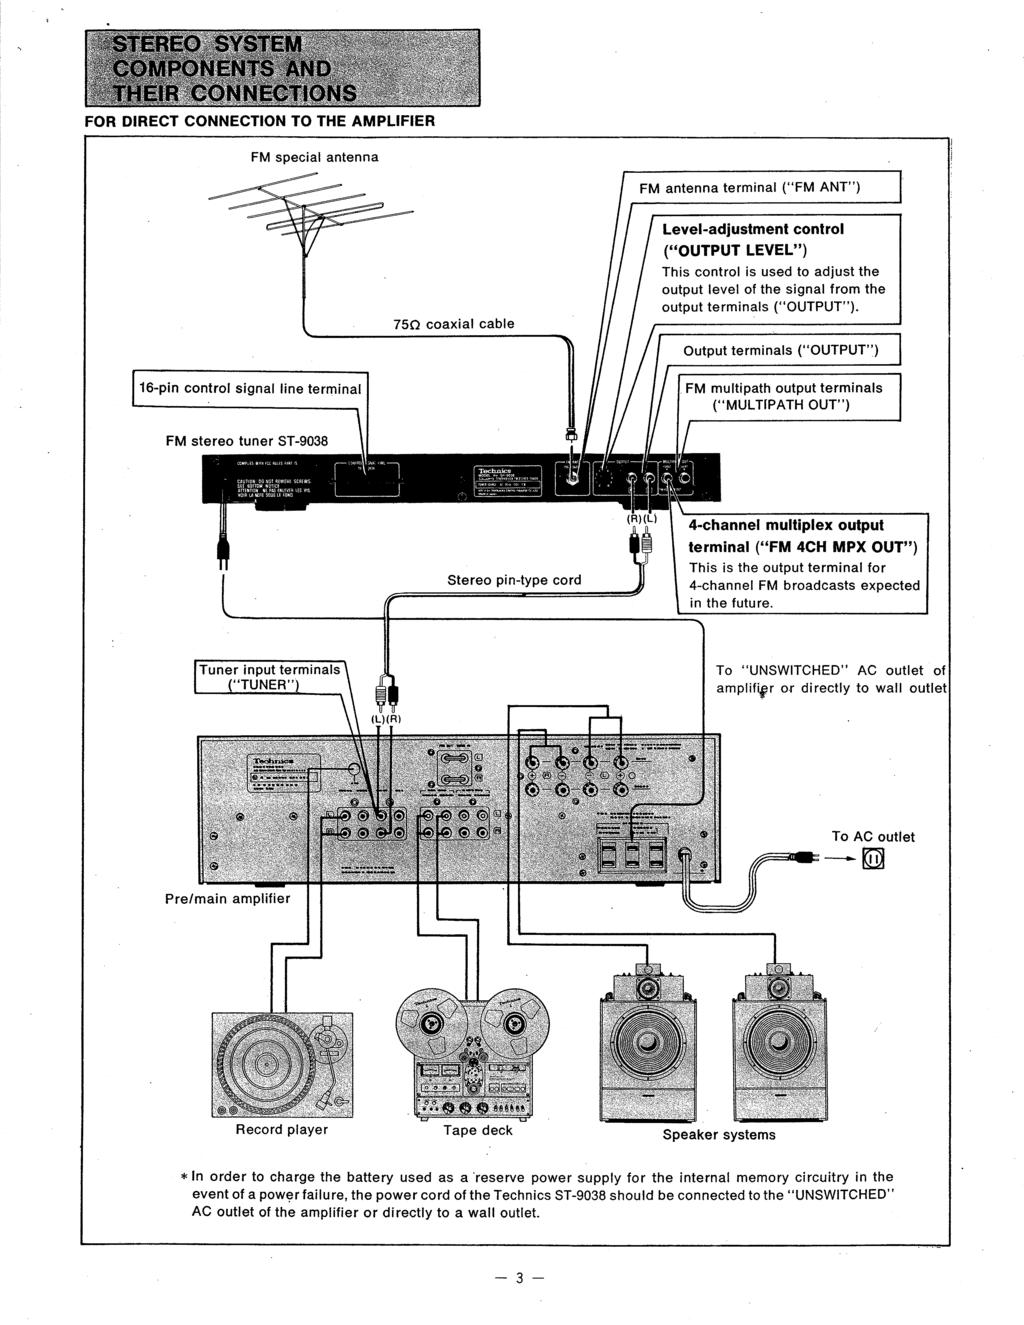 Technrcs S T 903el Operating Instructions Guzrn Rz Synthesizer Fm Power Supply For The Antenna Amplifier Direct Connection To Amplif Er Special Terminal